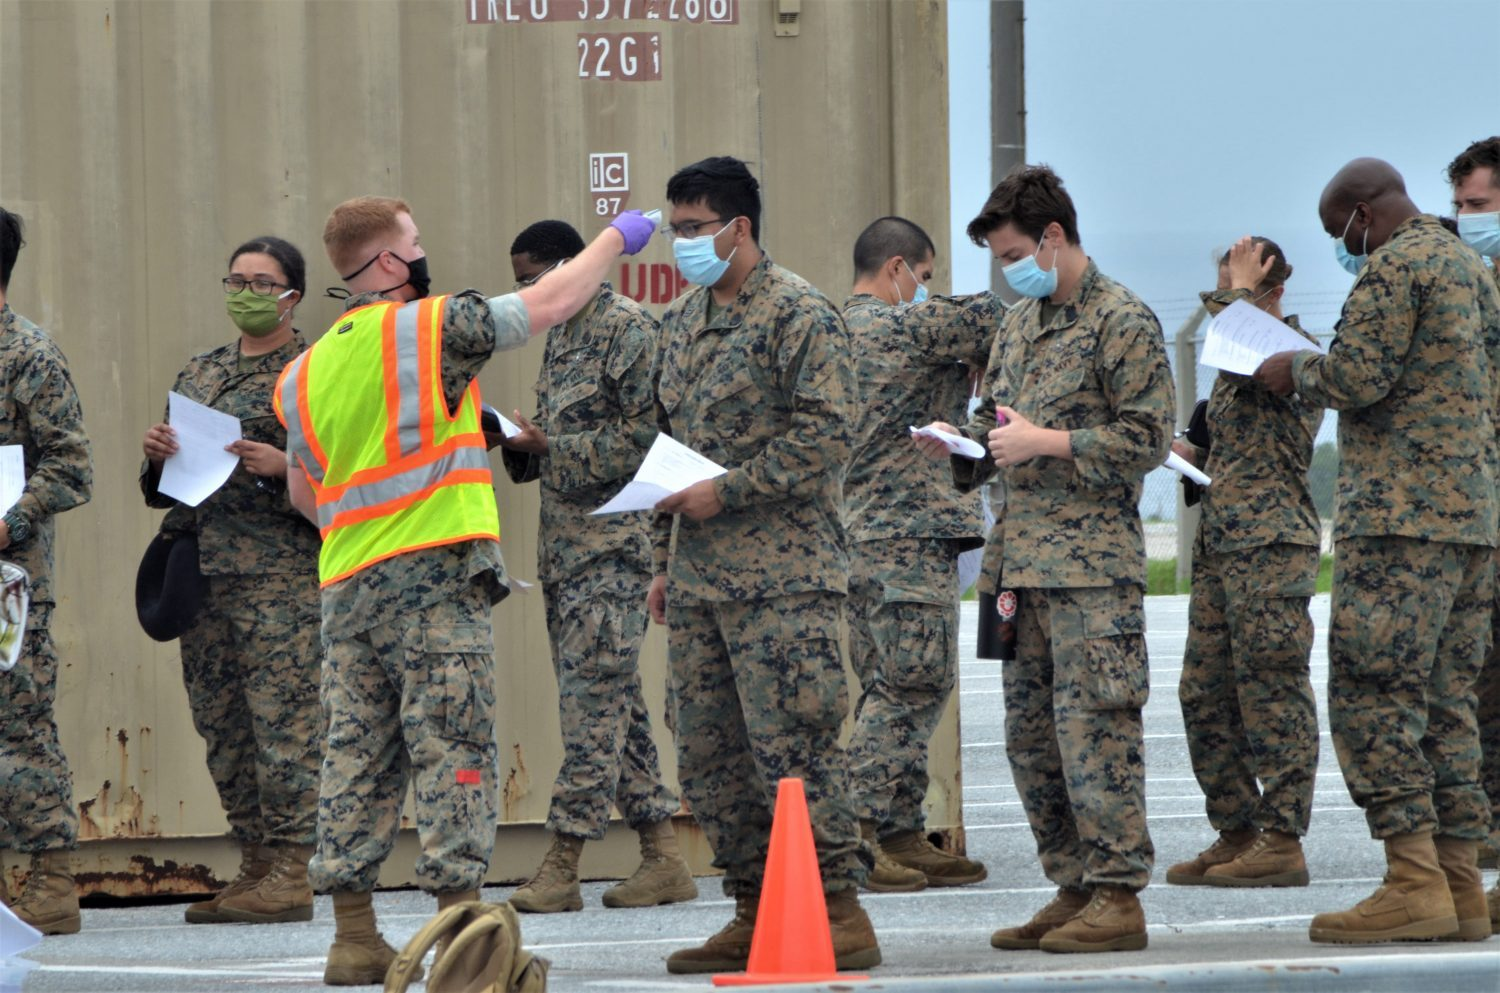 From Guam to Okinawa, the Exchange Supports Medical Task Force during COVID-19